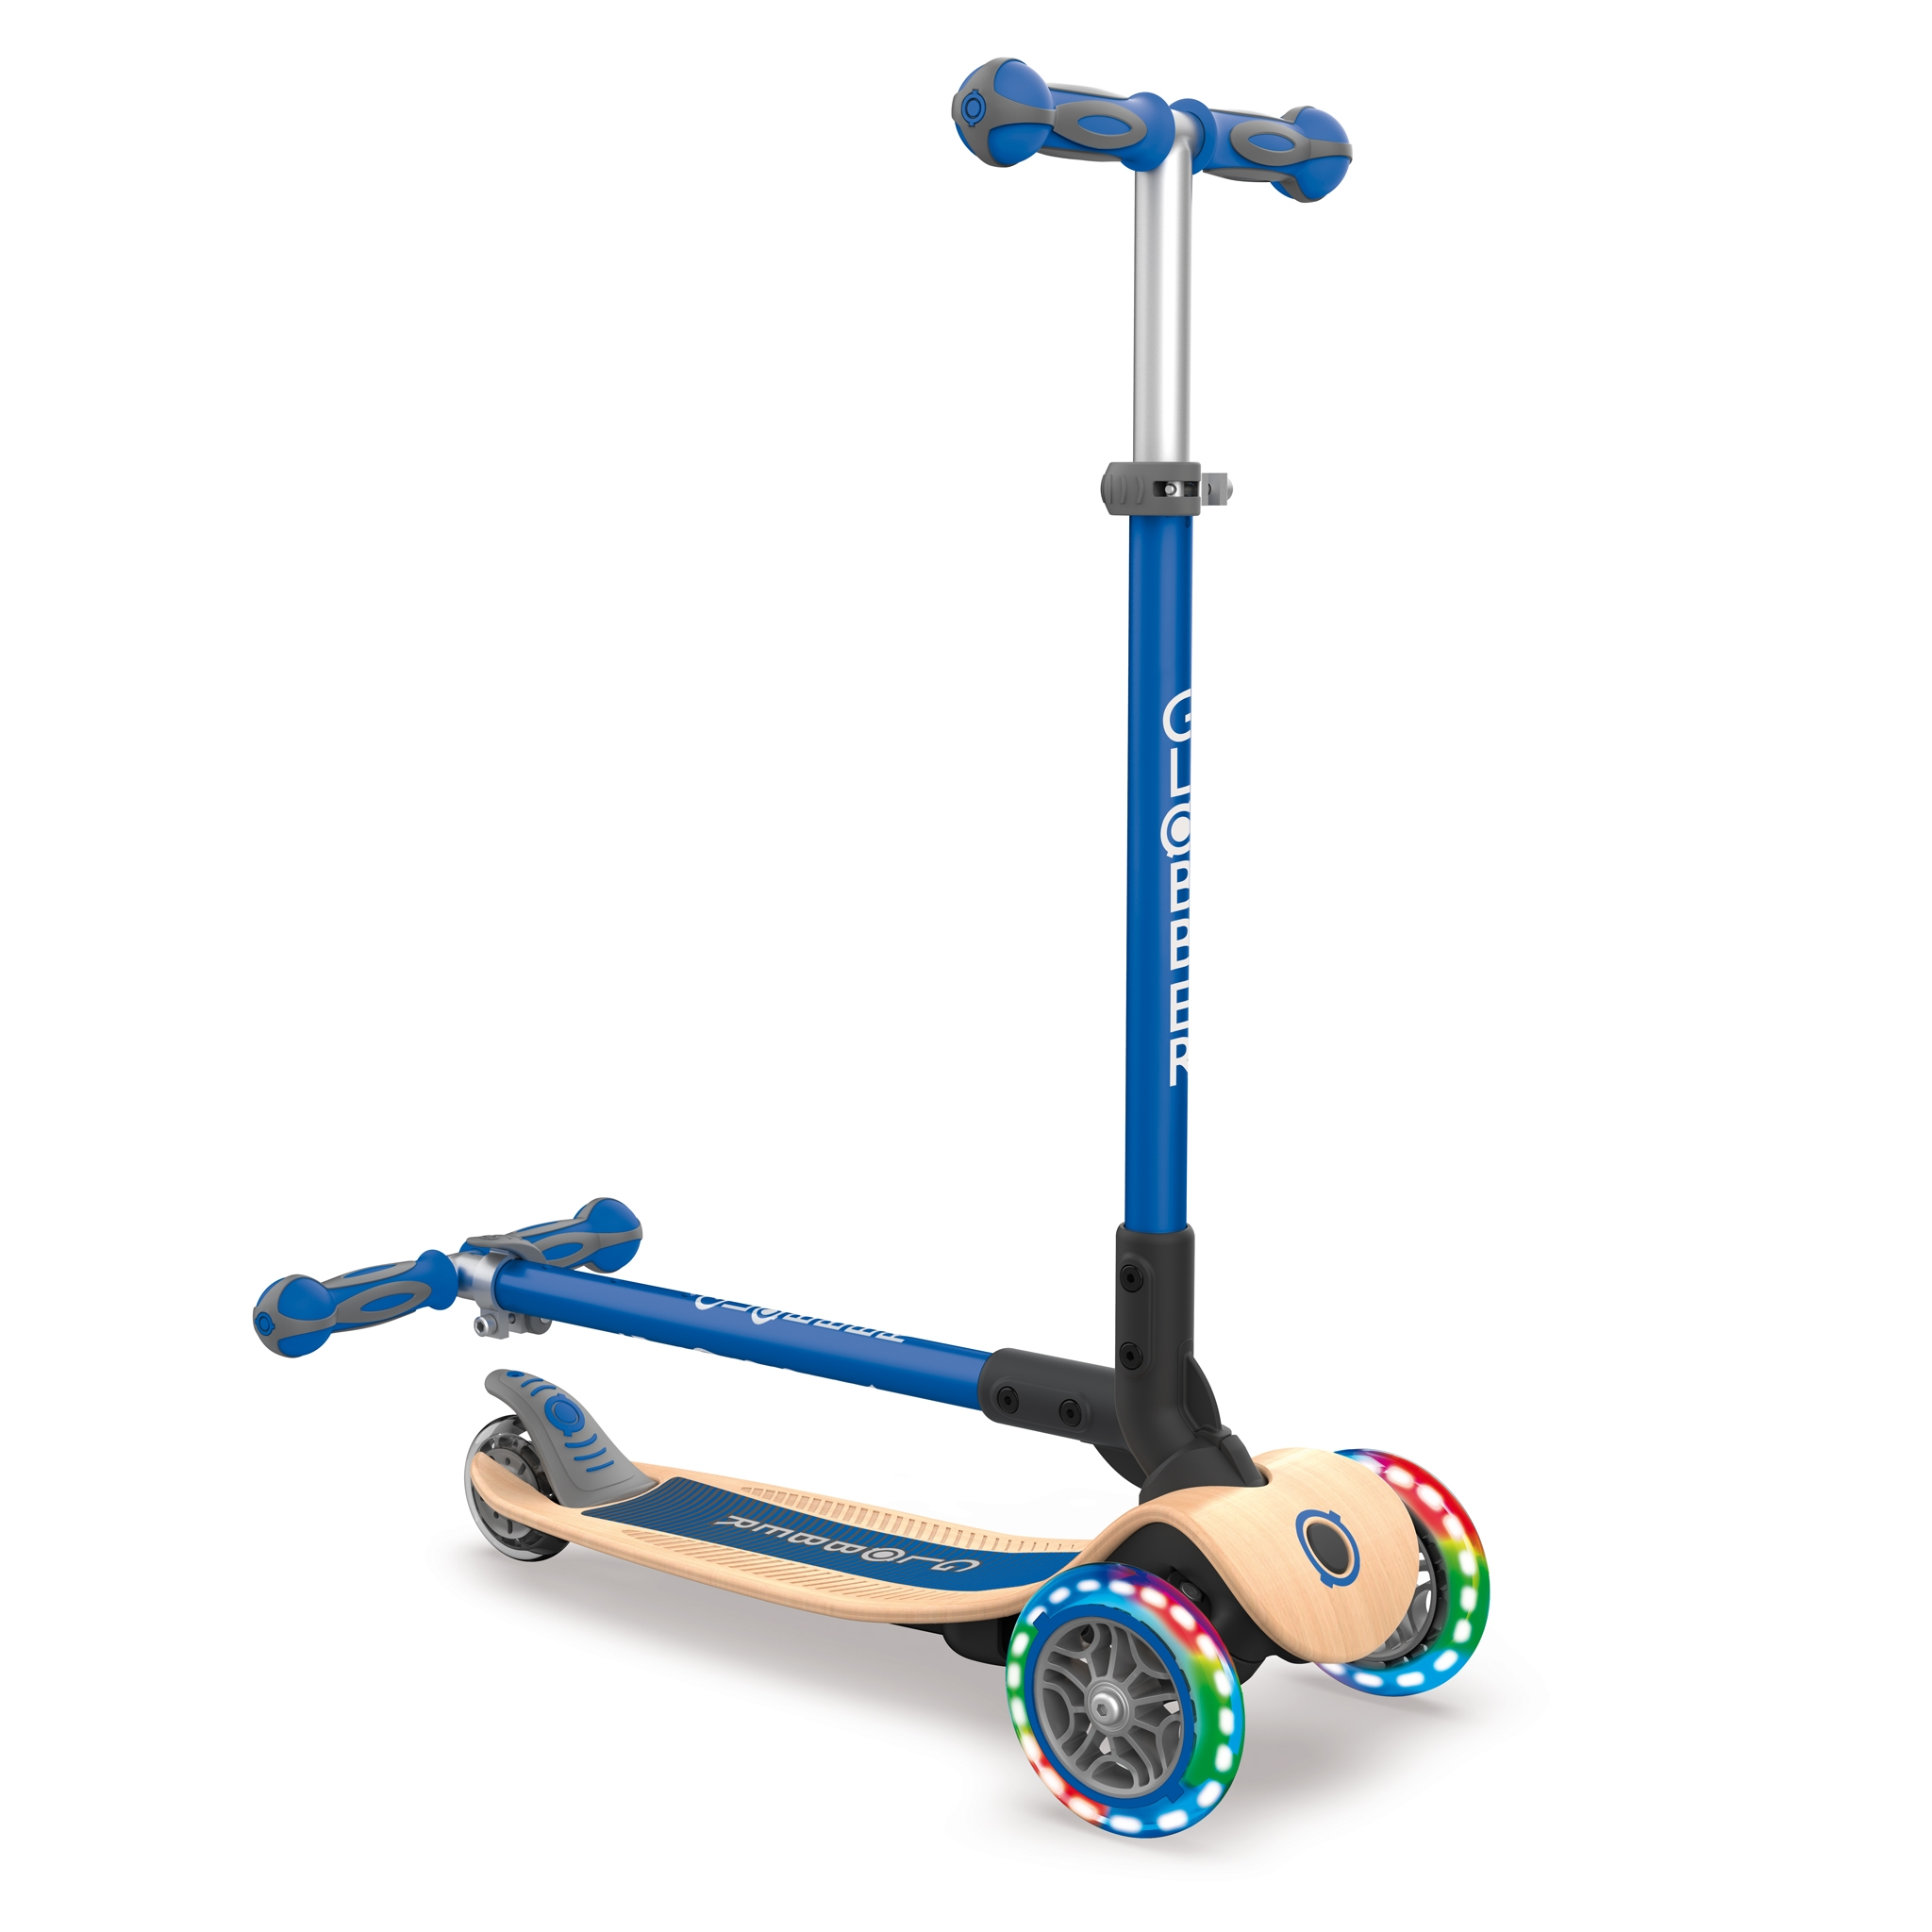 Globber-PRIMO-FOLDABLE-WOOD-LIGHTS-3-wheel-foldable-light-up-scooter-with-7-ply-wooden-scooter-deck-and-light-up-wheels 2